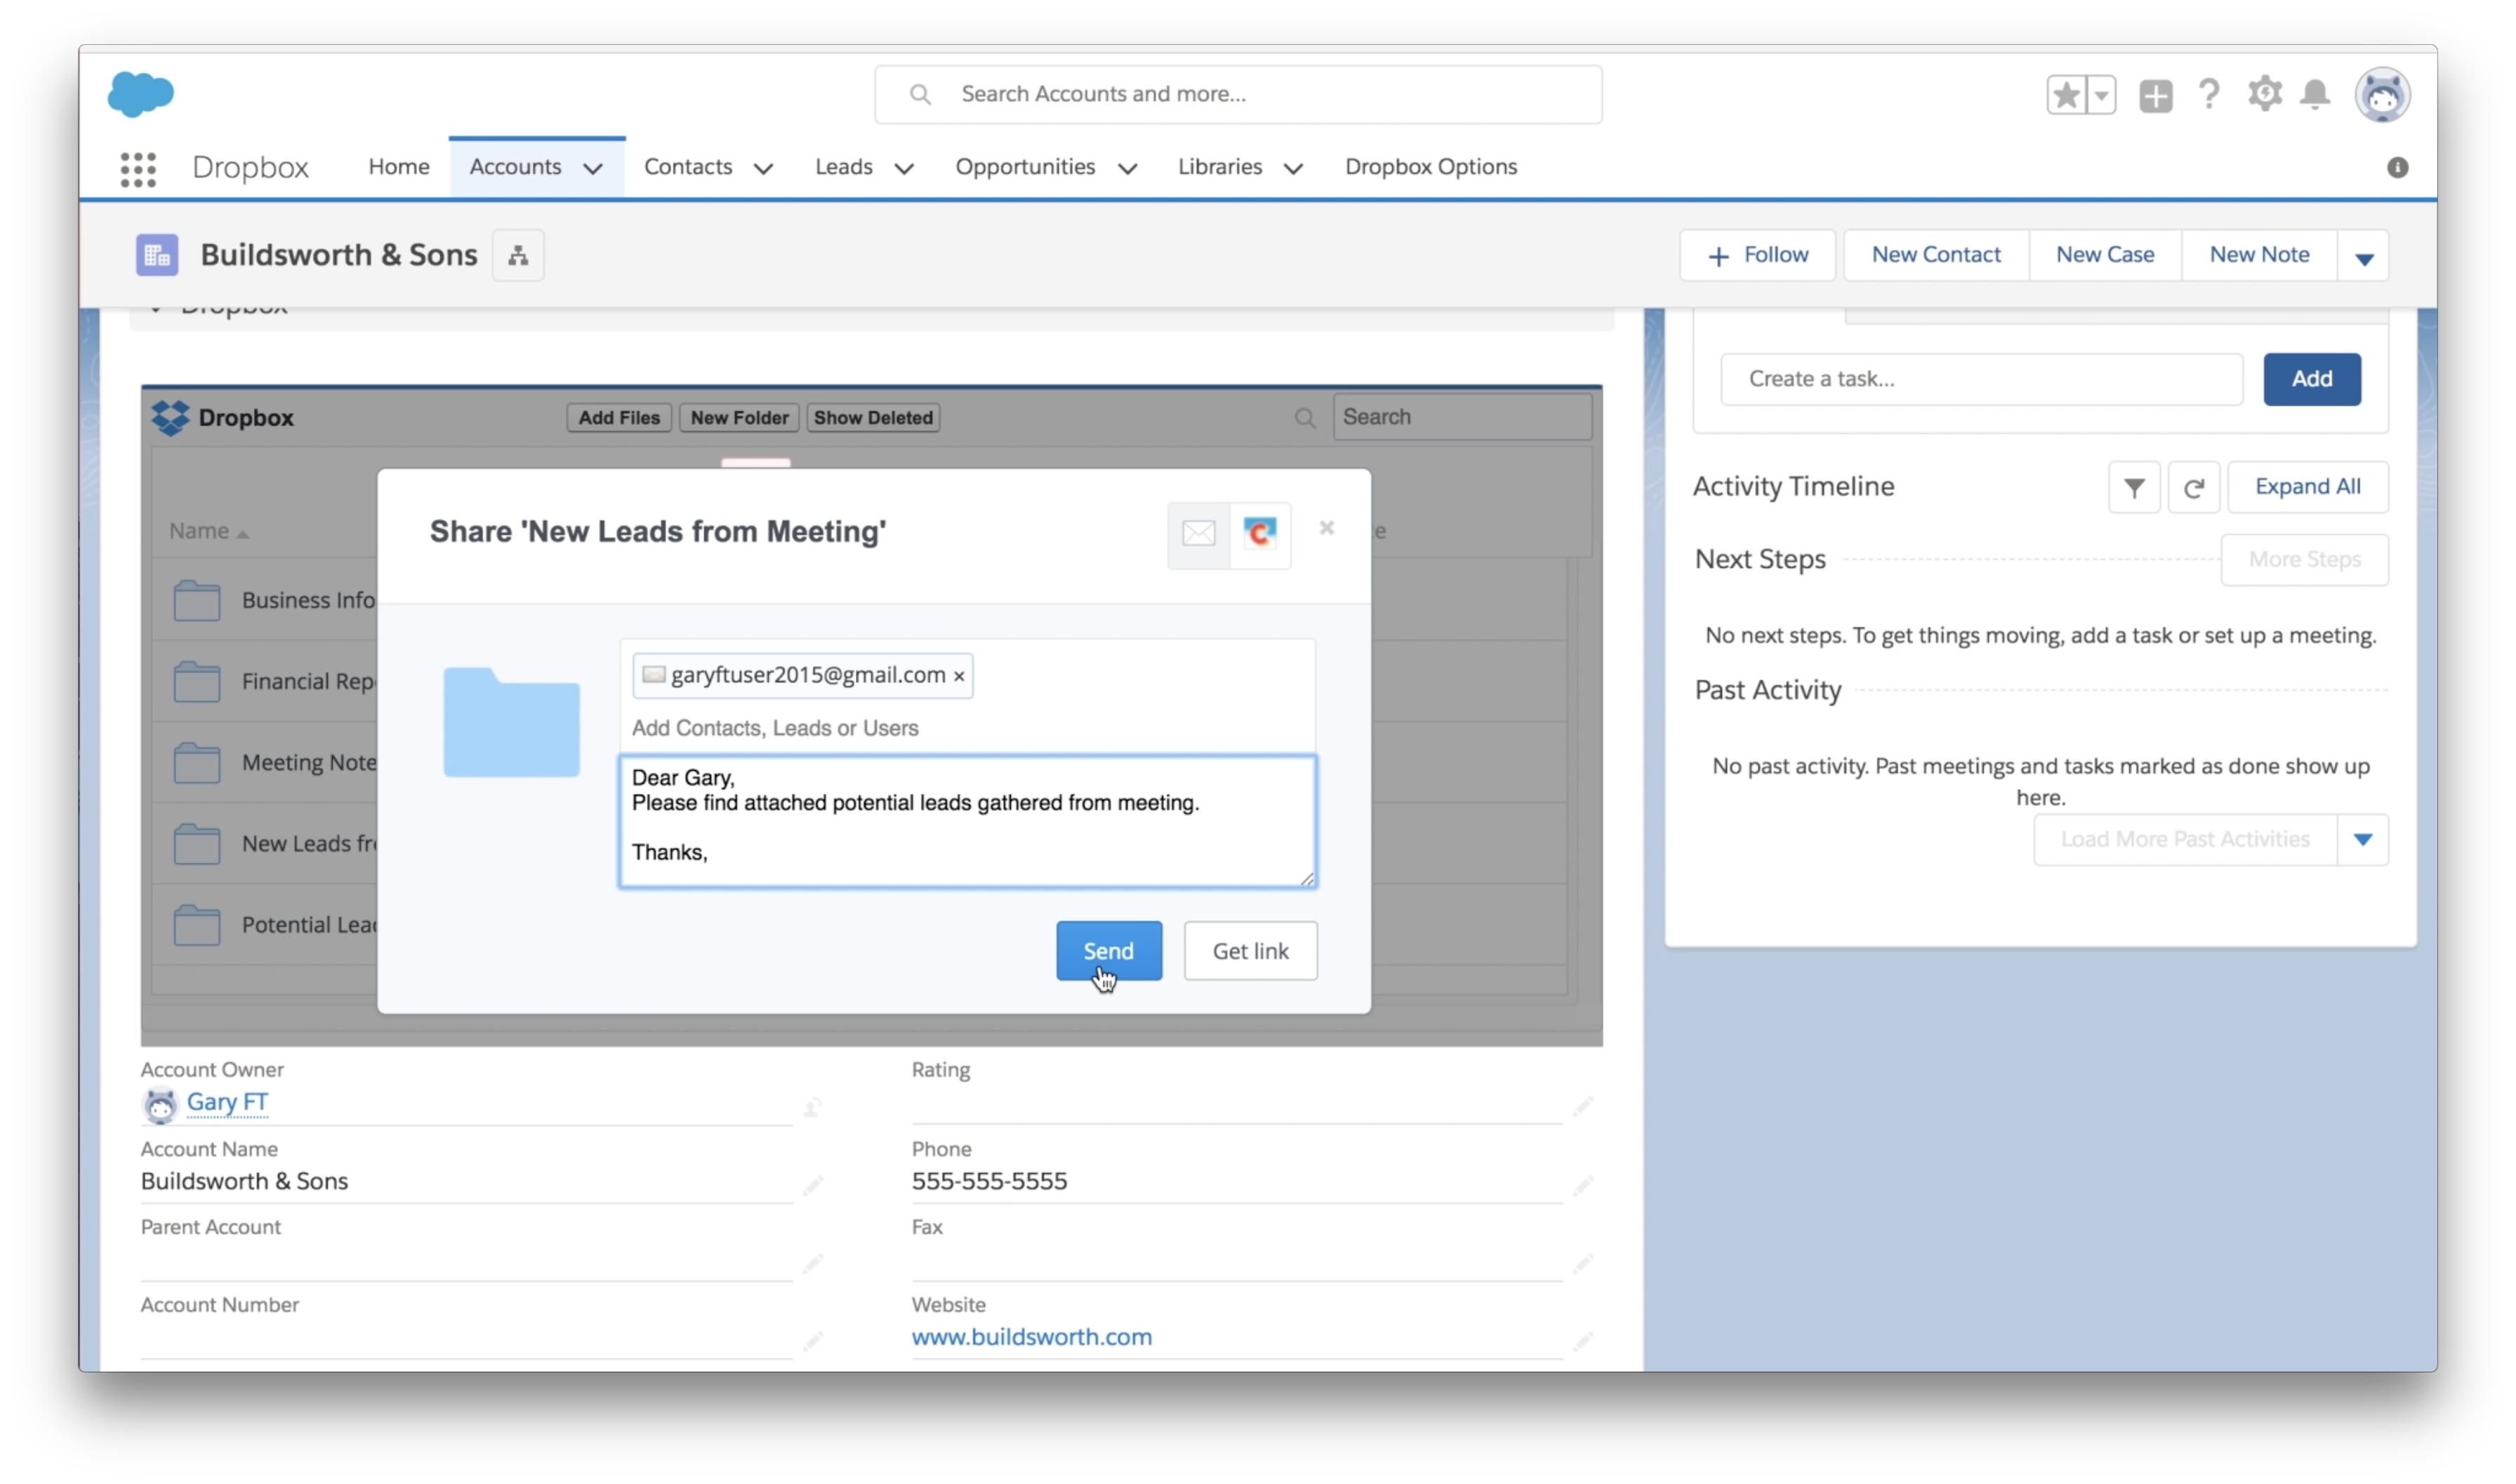 The Dropbox app in Salesforce